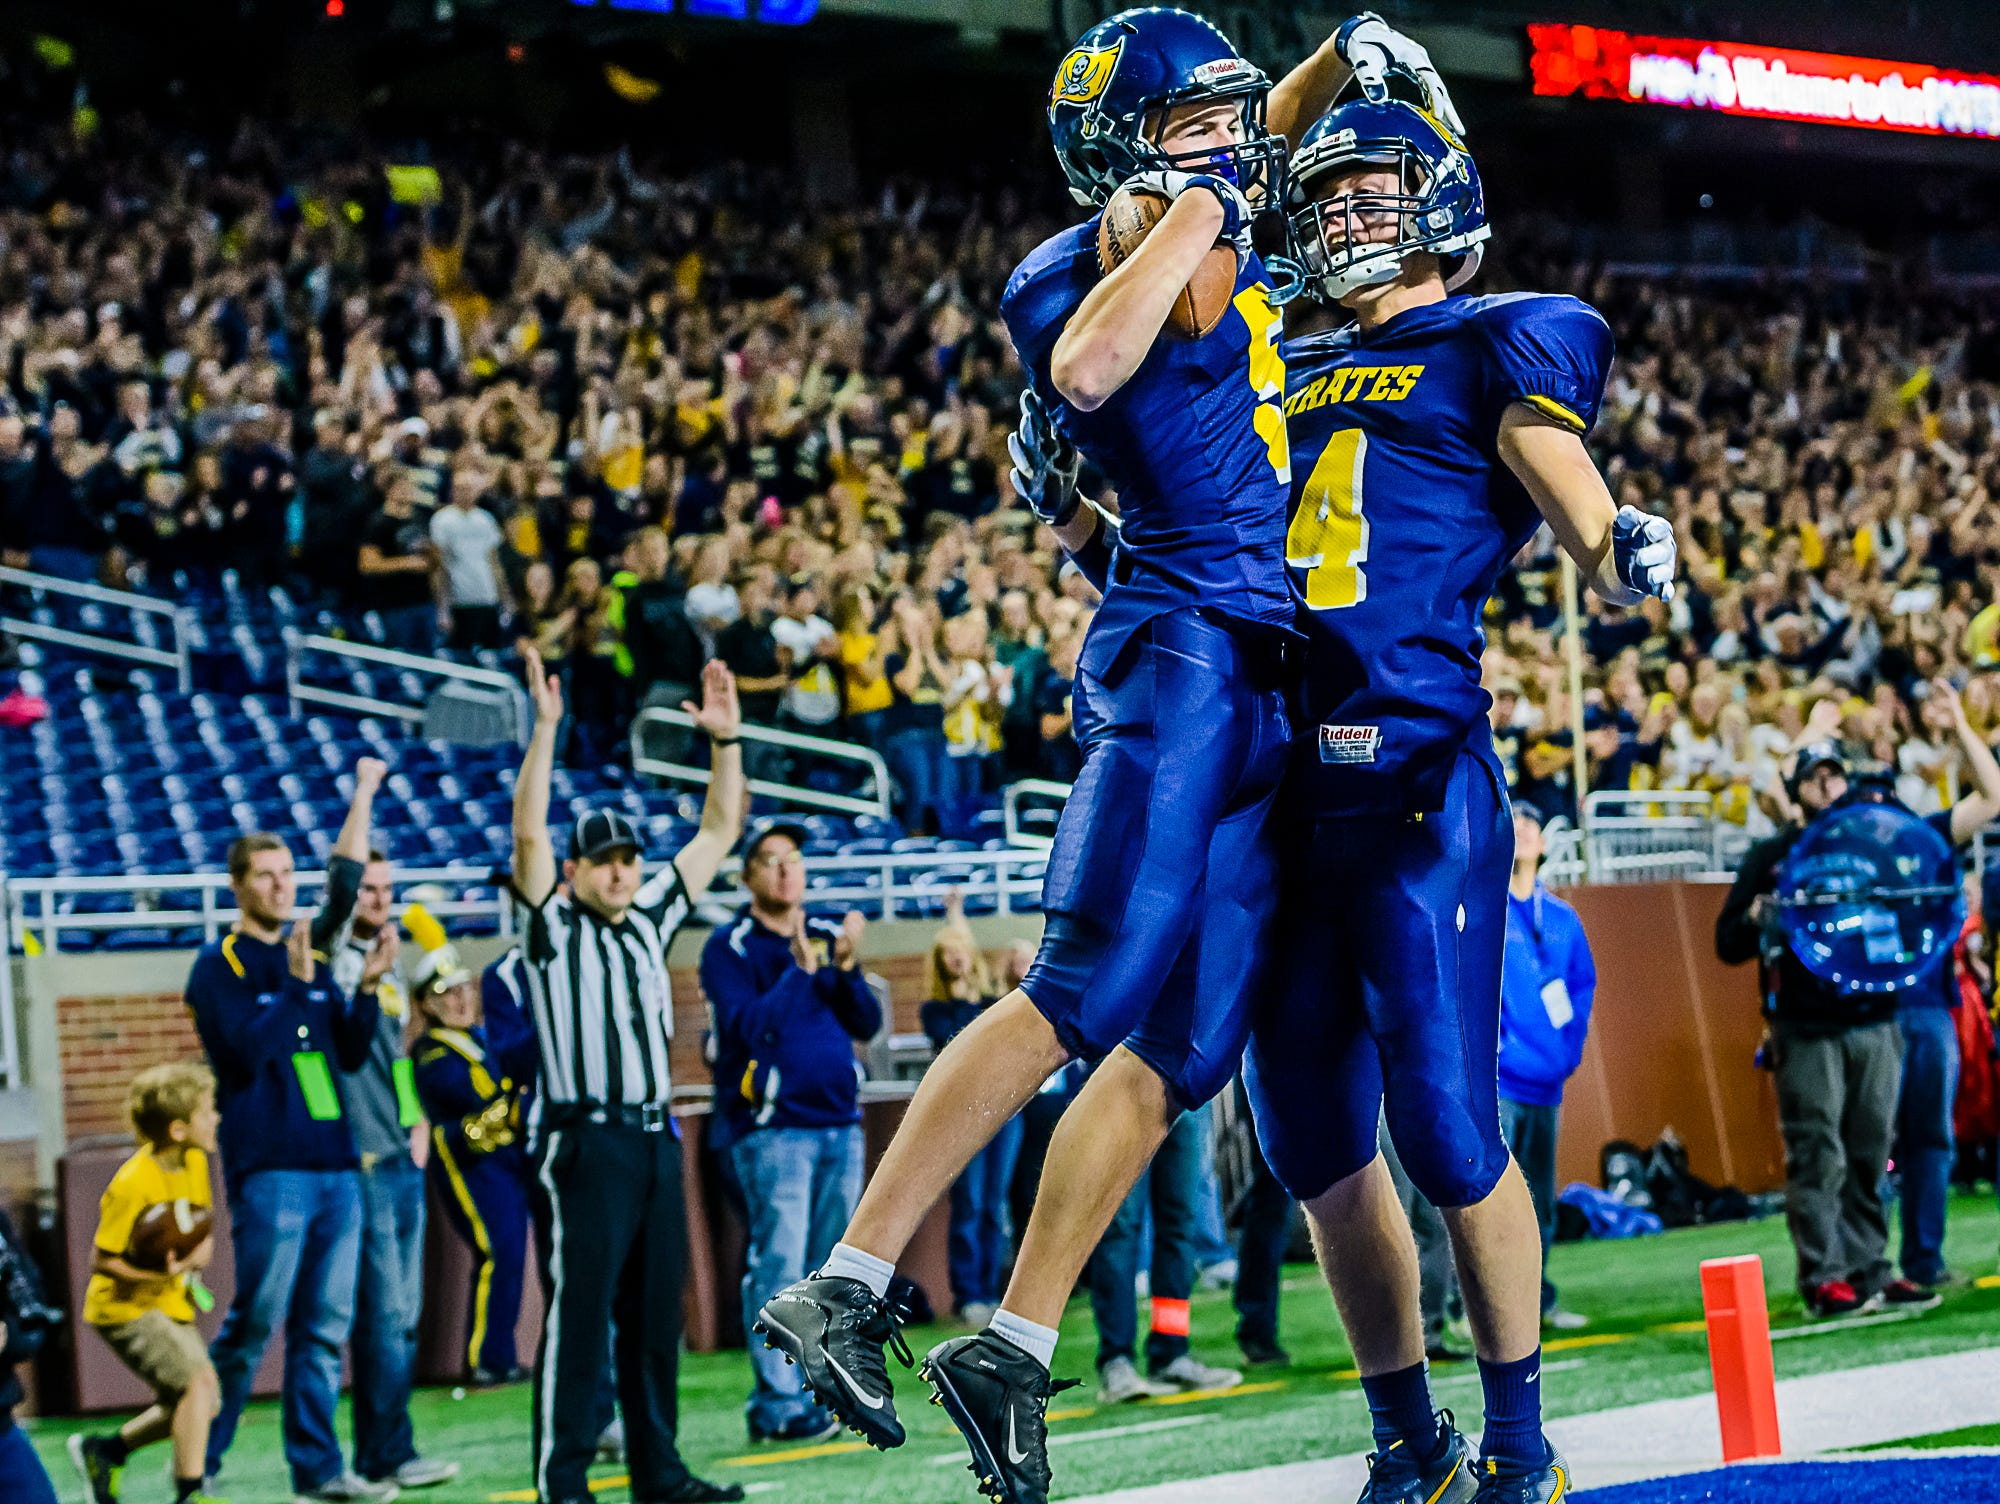 Logan Hengesbach ,left, of Pewamo-Westphalia celebrates with teammate Garrett Trierweiler after catching a pass for a touchdown to give the Pirates a 6-0 lead late in the 2nd quarter of their Division 7 state final game with Detroit Loyola Saturday November 26, 2016 at Ford Field in Detroit. KEVIN W. FOWLER PHOTO